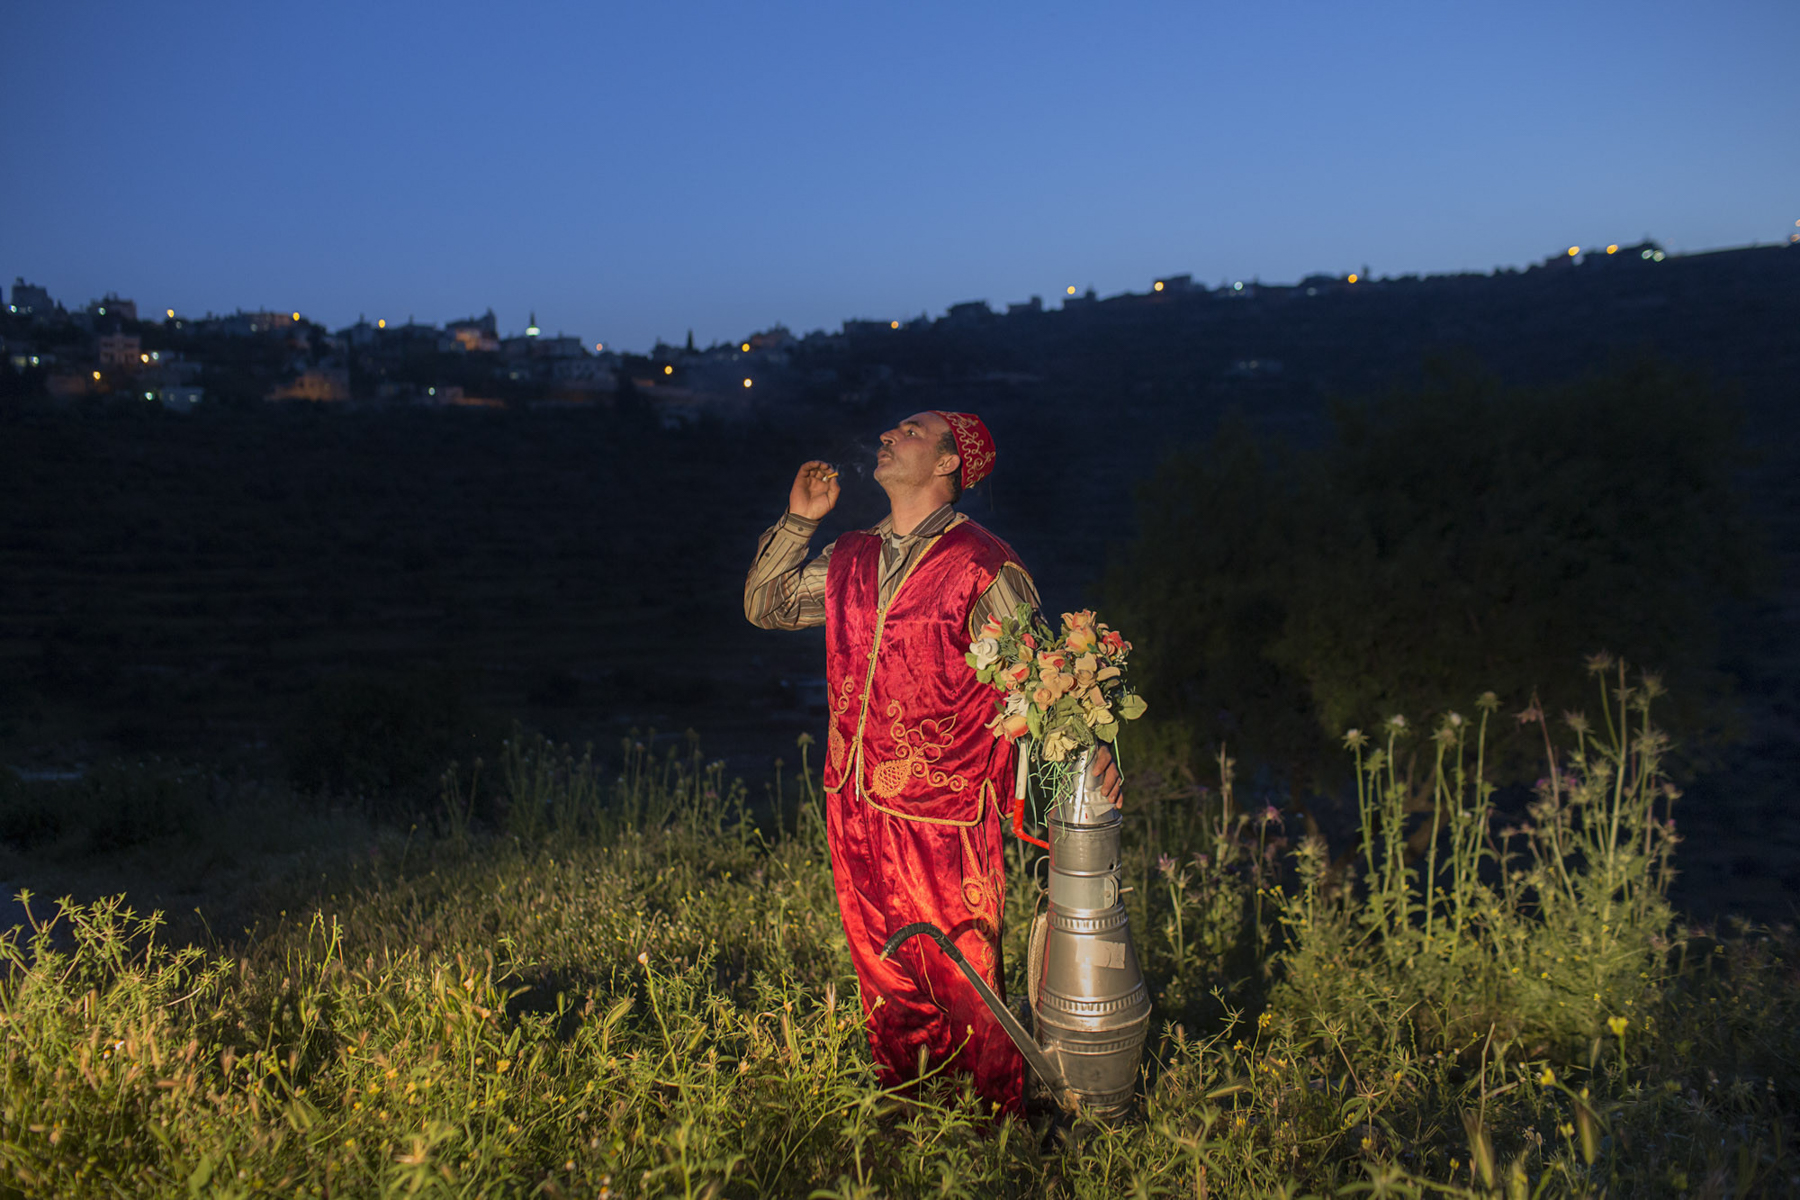 Occupied Palestinian Territories, West Bank, Abwein, 29 May 2015